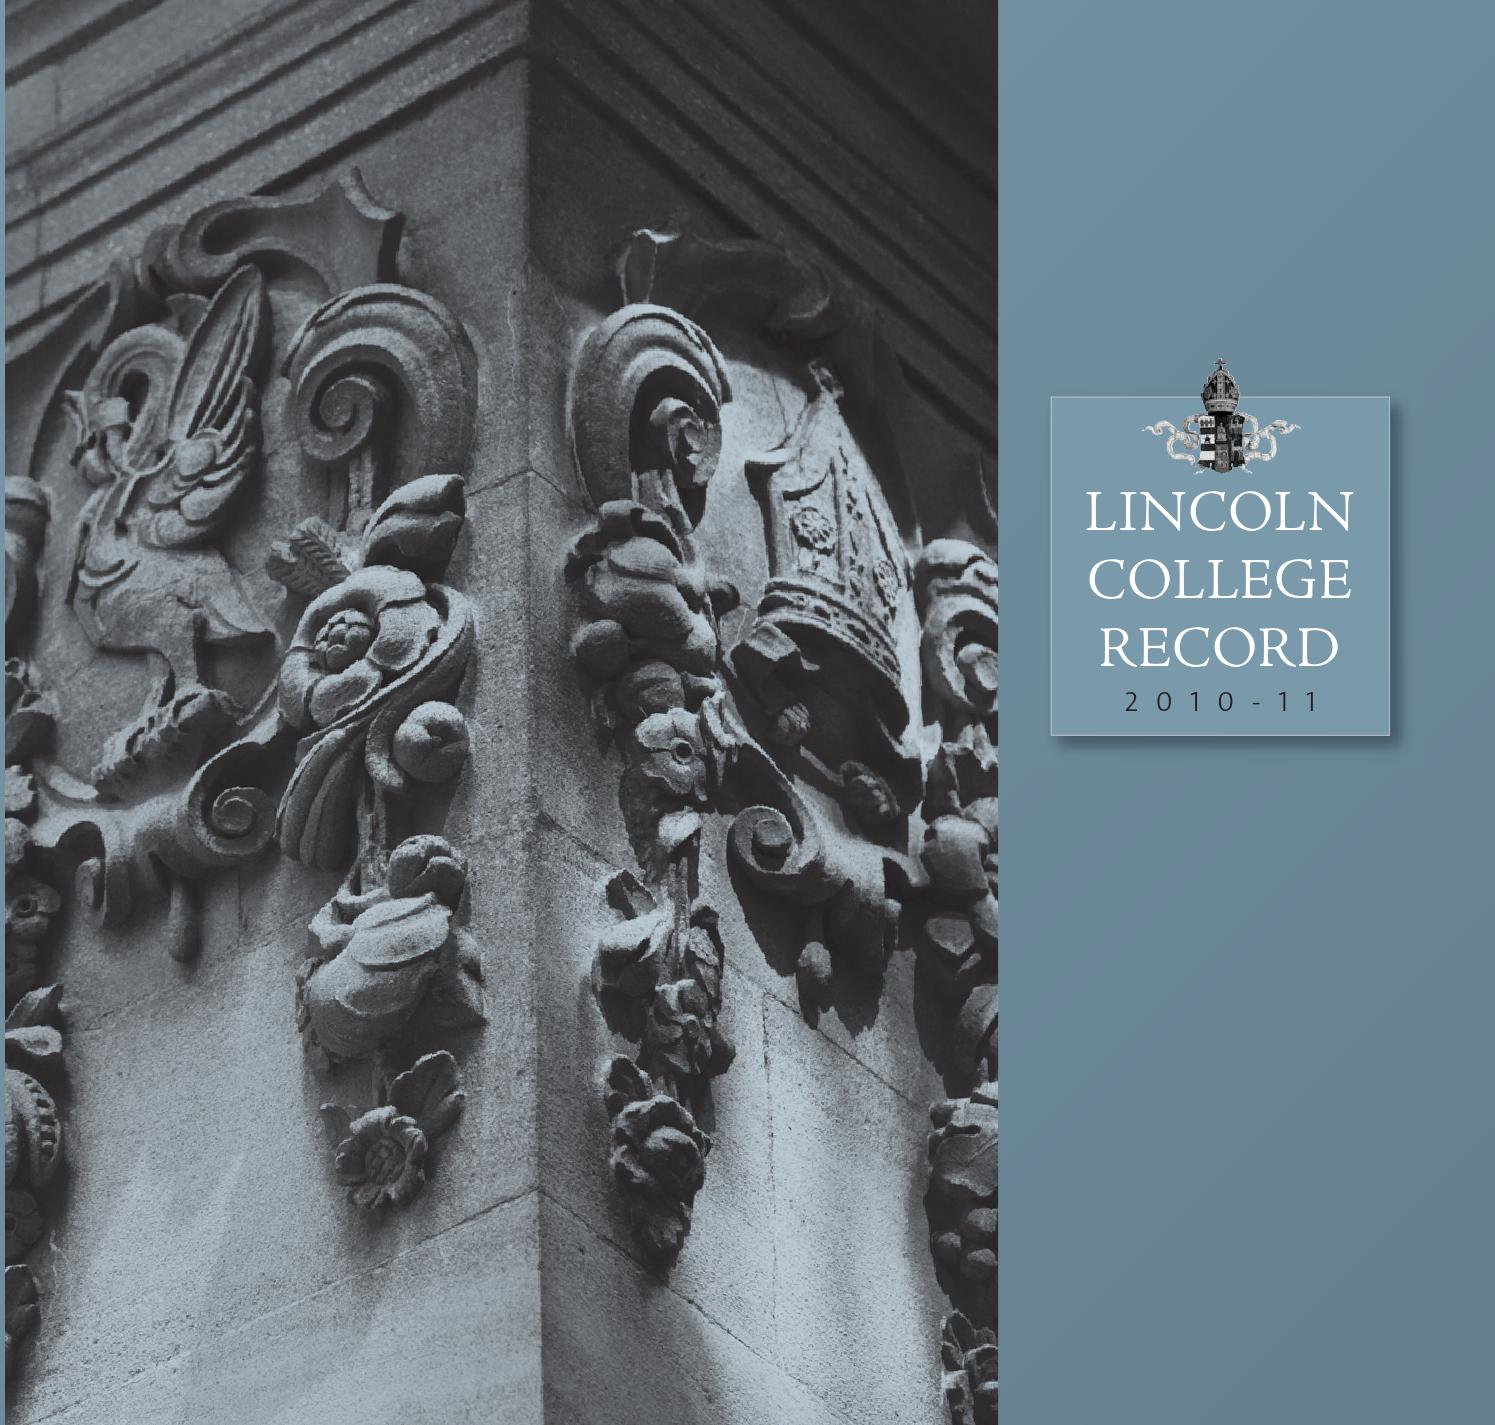 Lincoln record        final by Lincoln College   issuu